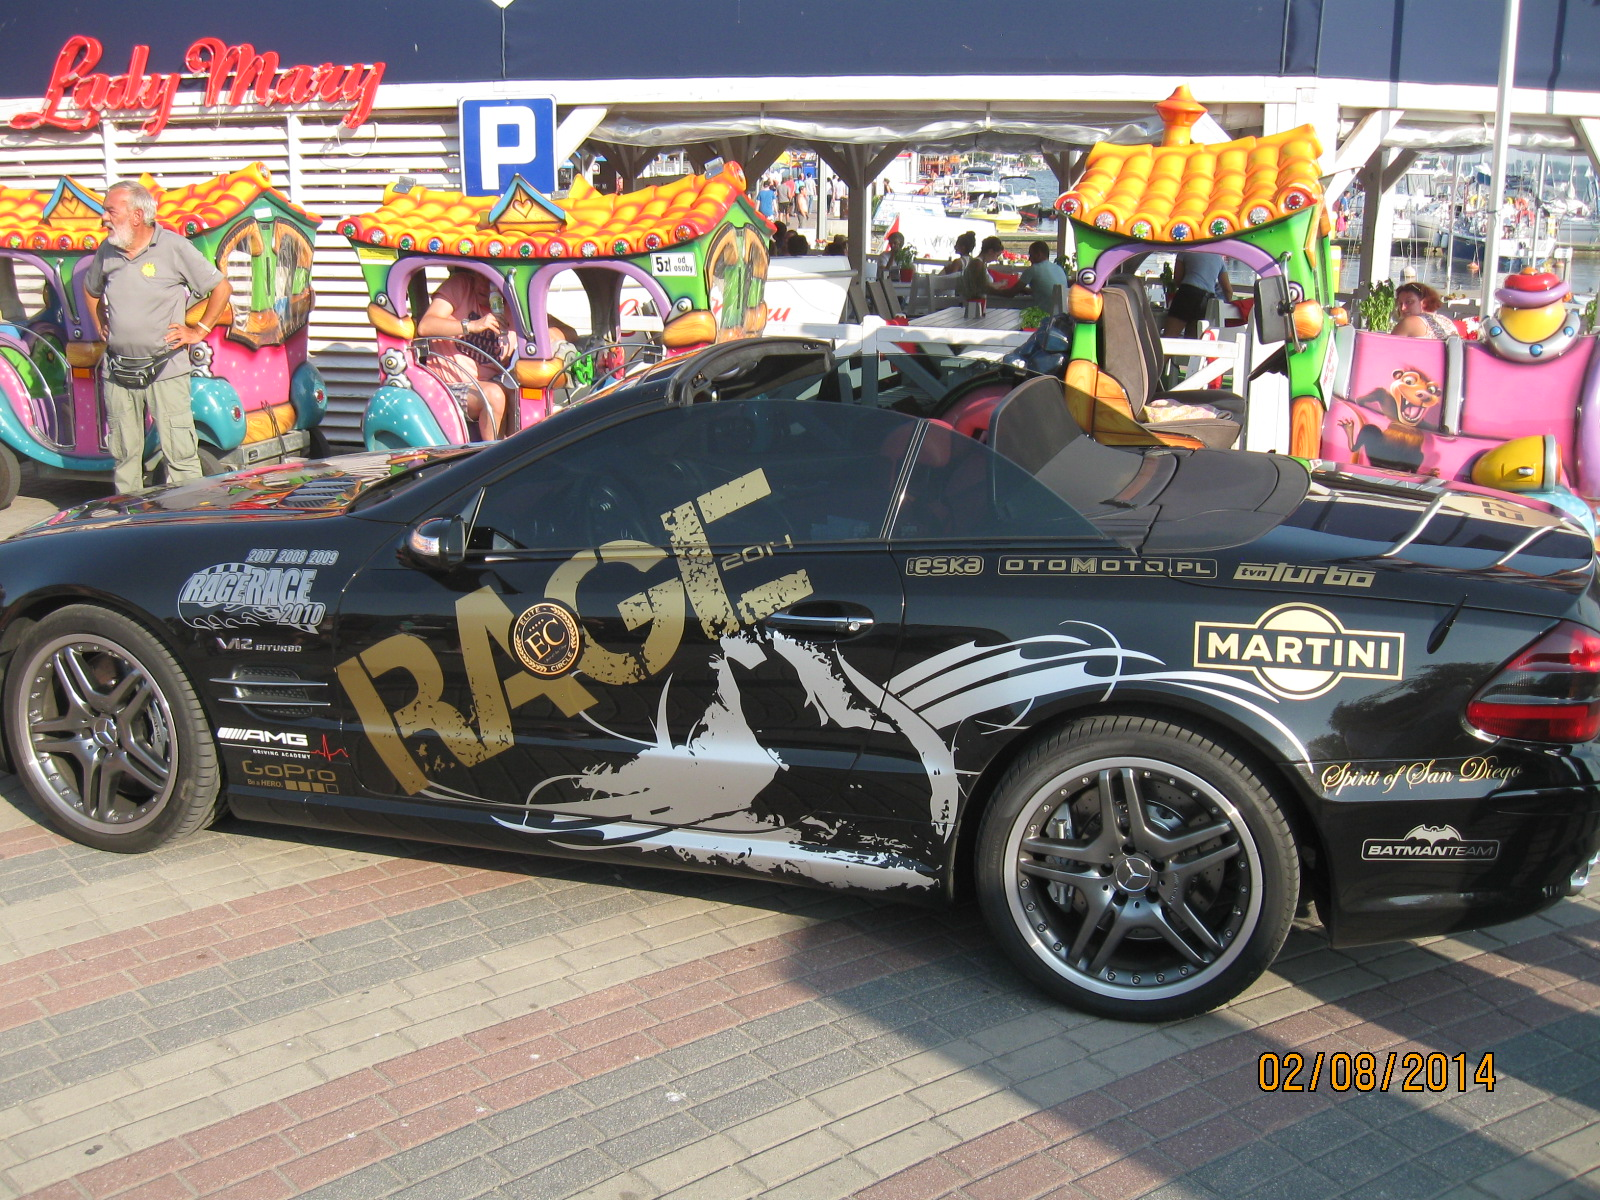 http://124coupe.pl/hosting/images/img2903.jpg